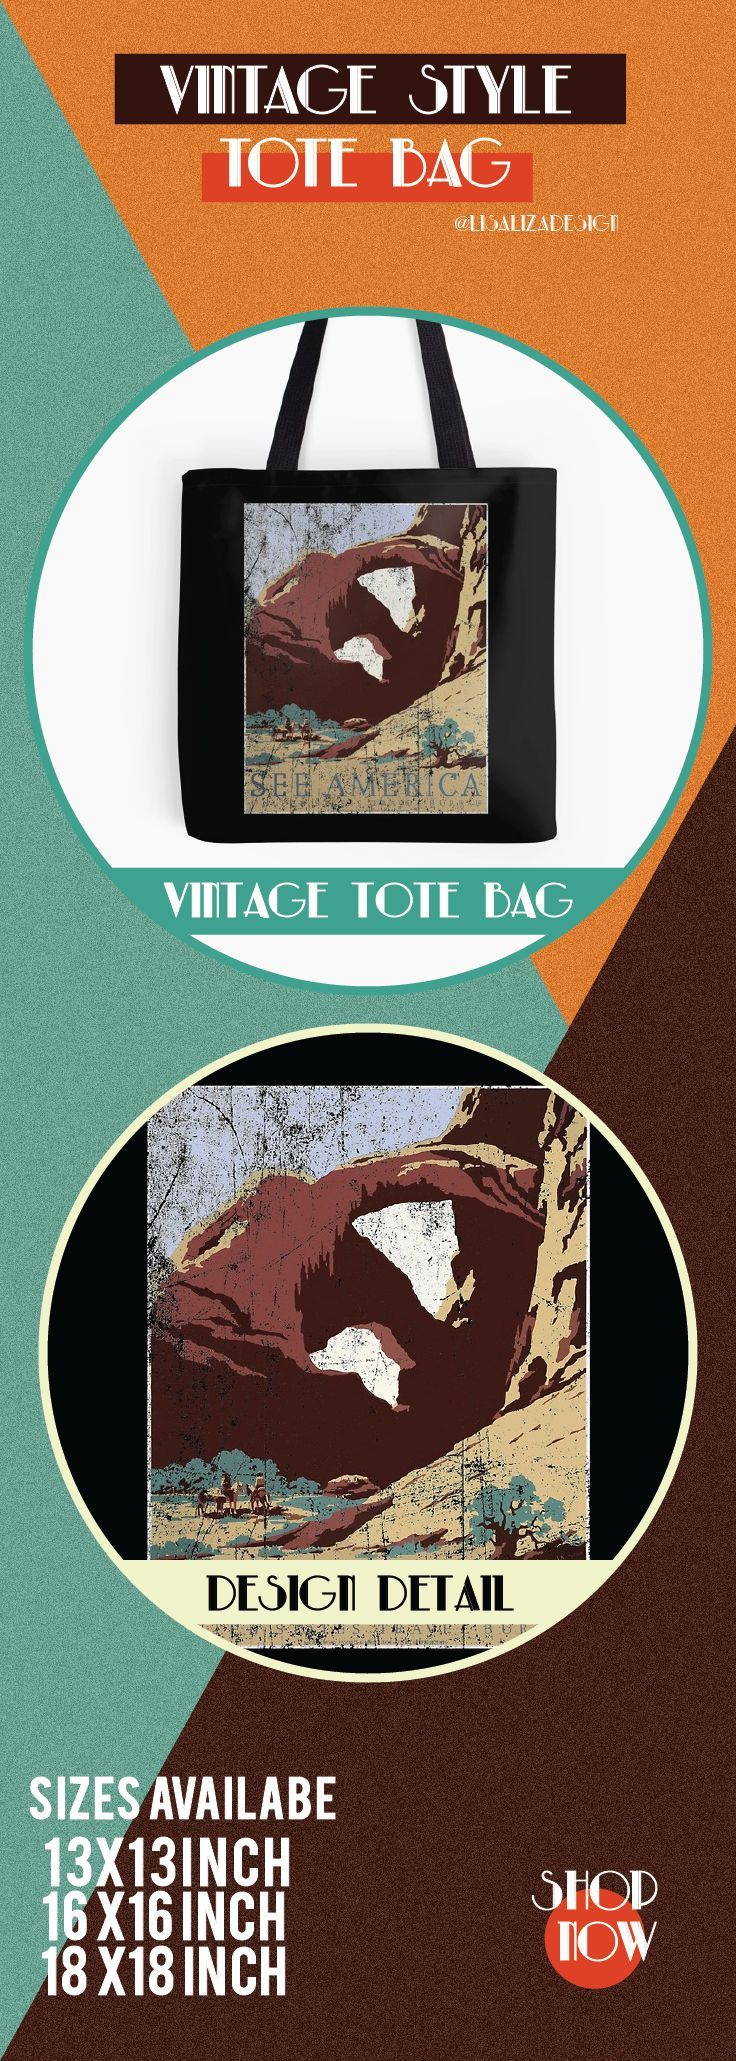 Vintage Travel Poster, Aged and Weathered - Southwest America USA.  ToteBags  A collection design inspired by vintage travel and advertisements posters  from the late 19th century printed on durable tote bags. 3 Sizes available .  Excellent gift ideas for vintage lovers and everyone. #vintage #hugs #holidaygift #oldies #homedecor #retro #travelposter #totebag #redbubble #teepublic #lisalizadesign #vintageposter #oldies